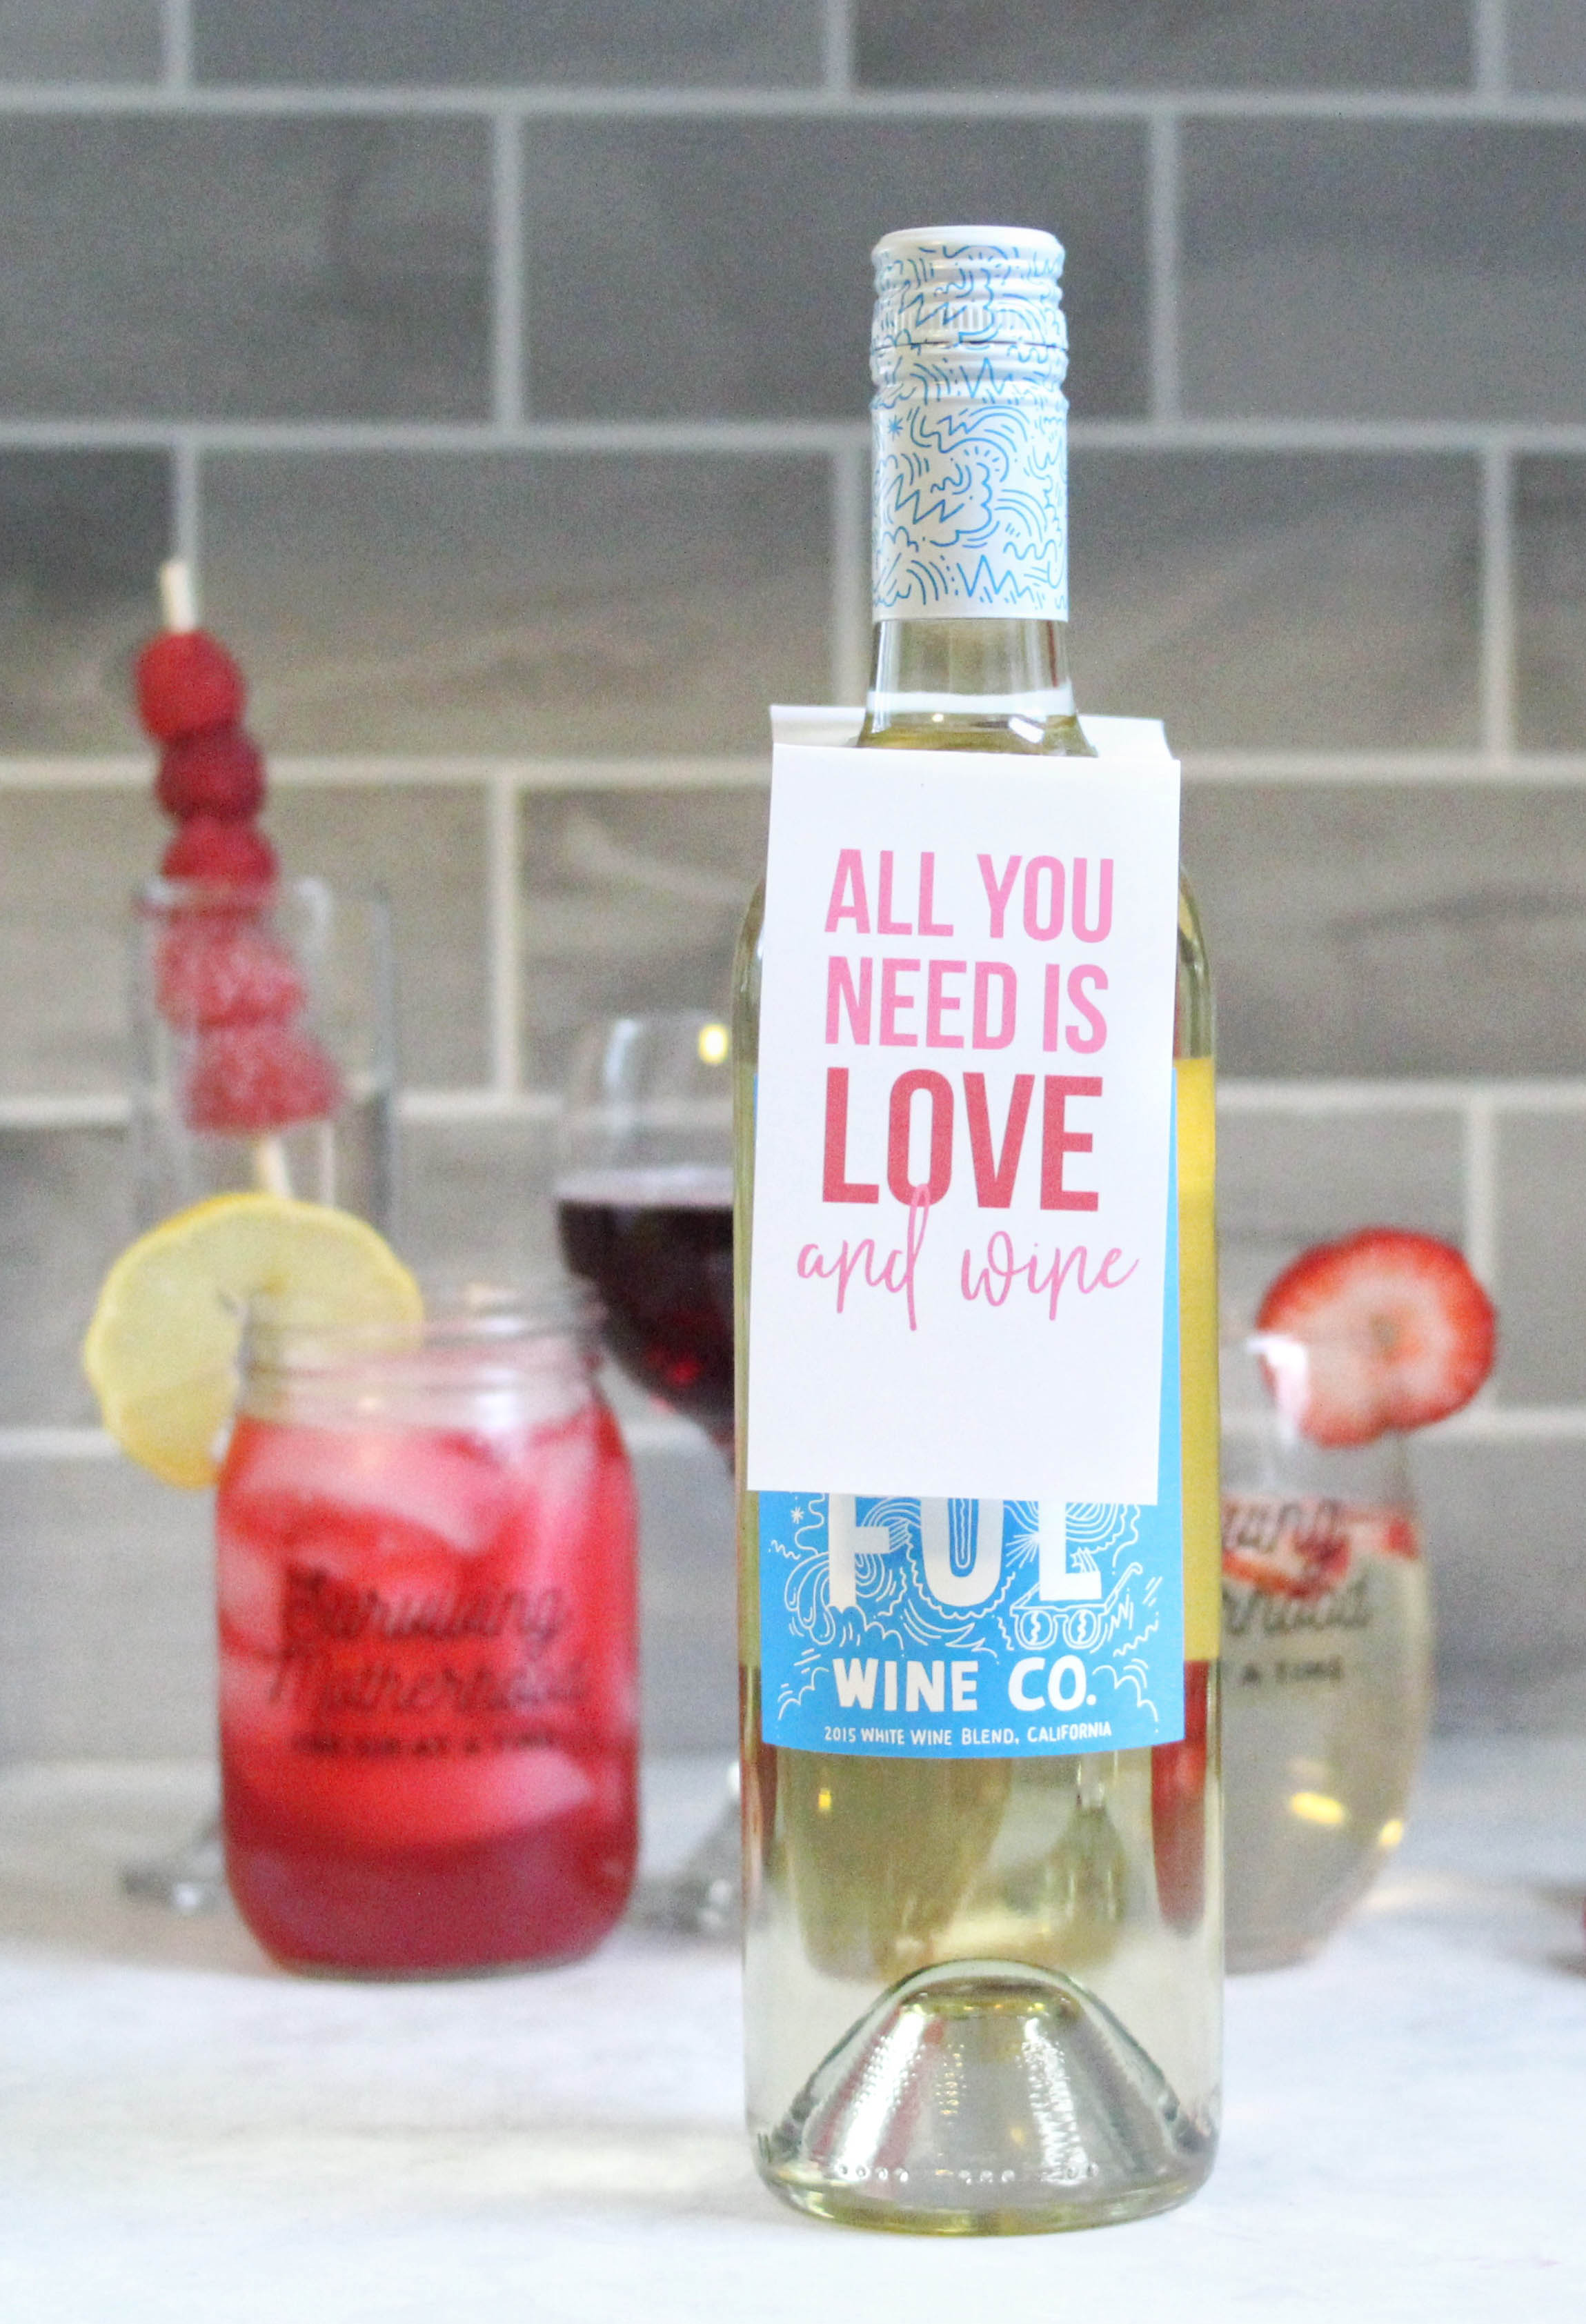 alentine's Day cocktail and mocktail recipes. Drinks + spritzers for Galentine's Day, with free printable wine tags for Valentine's Day! www.momlifemusthaves.com